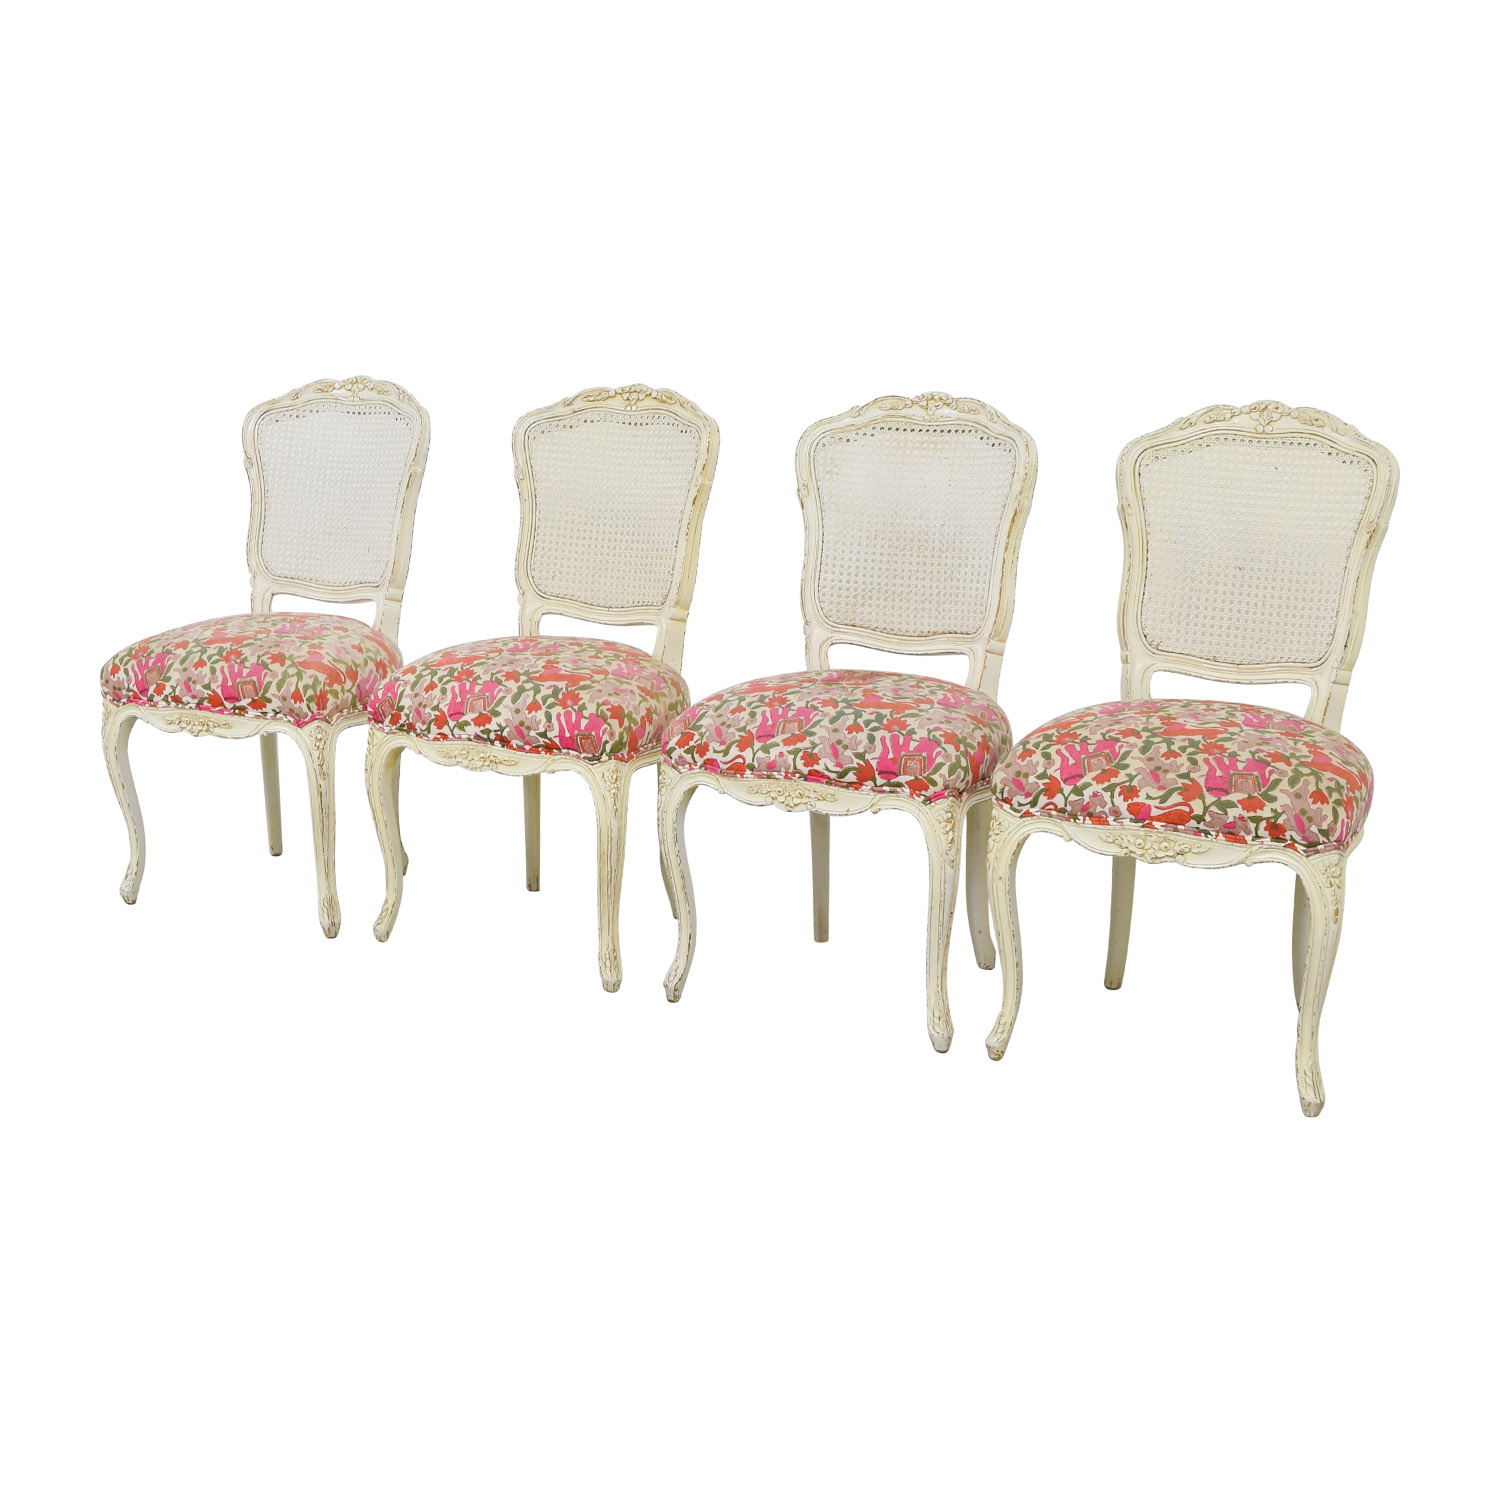 shop Rachel Ashwell Shabby Chic White Chairs Rachel Ashwell Chairs